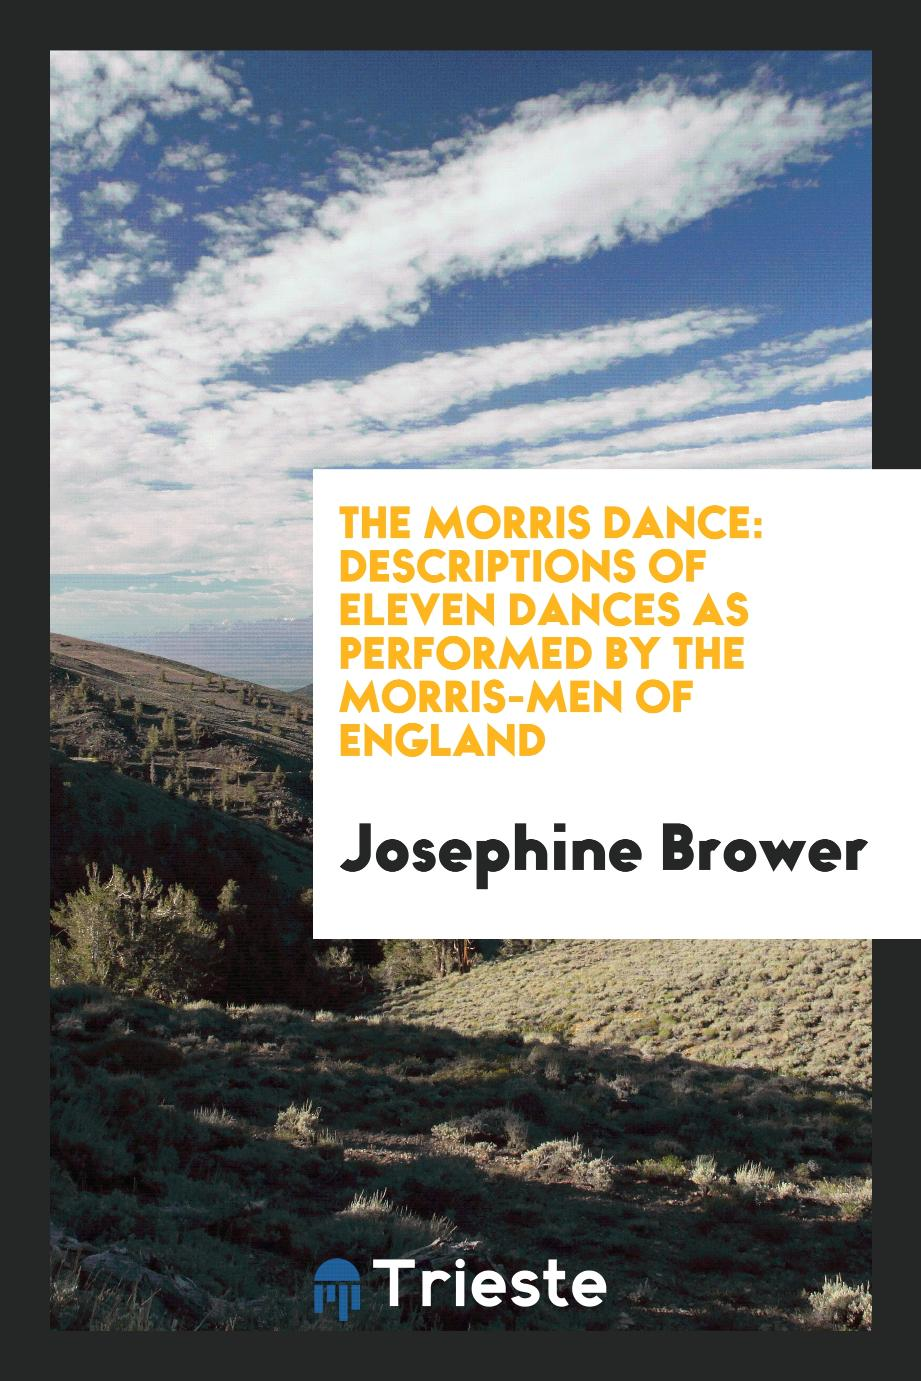 The Morris dance: descriptions of eleven dances as performed by the Morris-Men of England